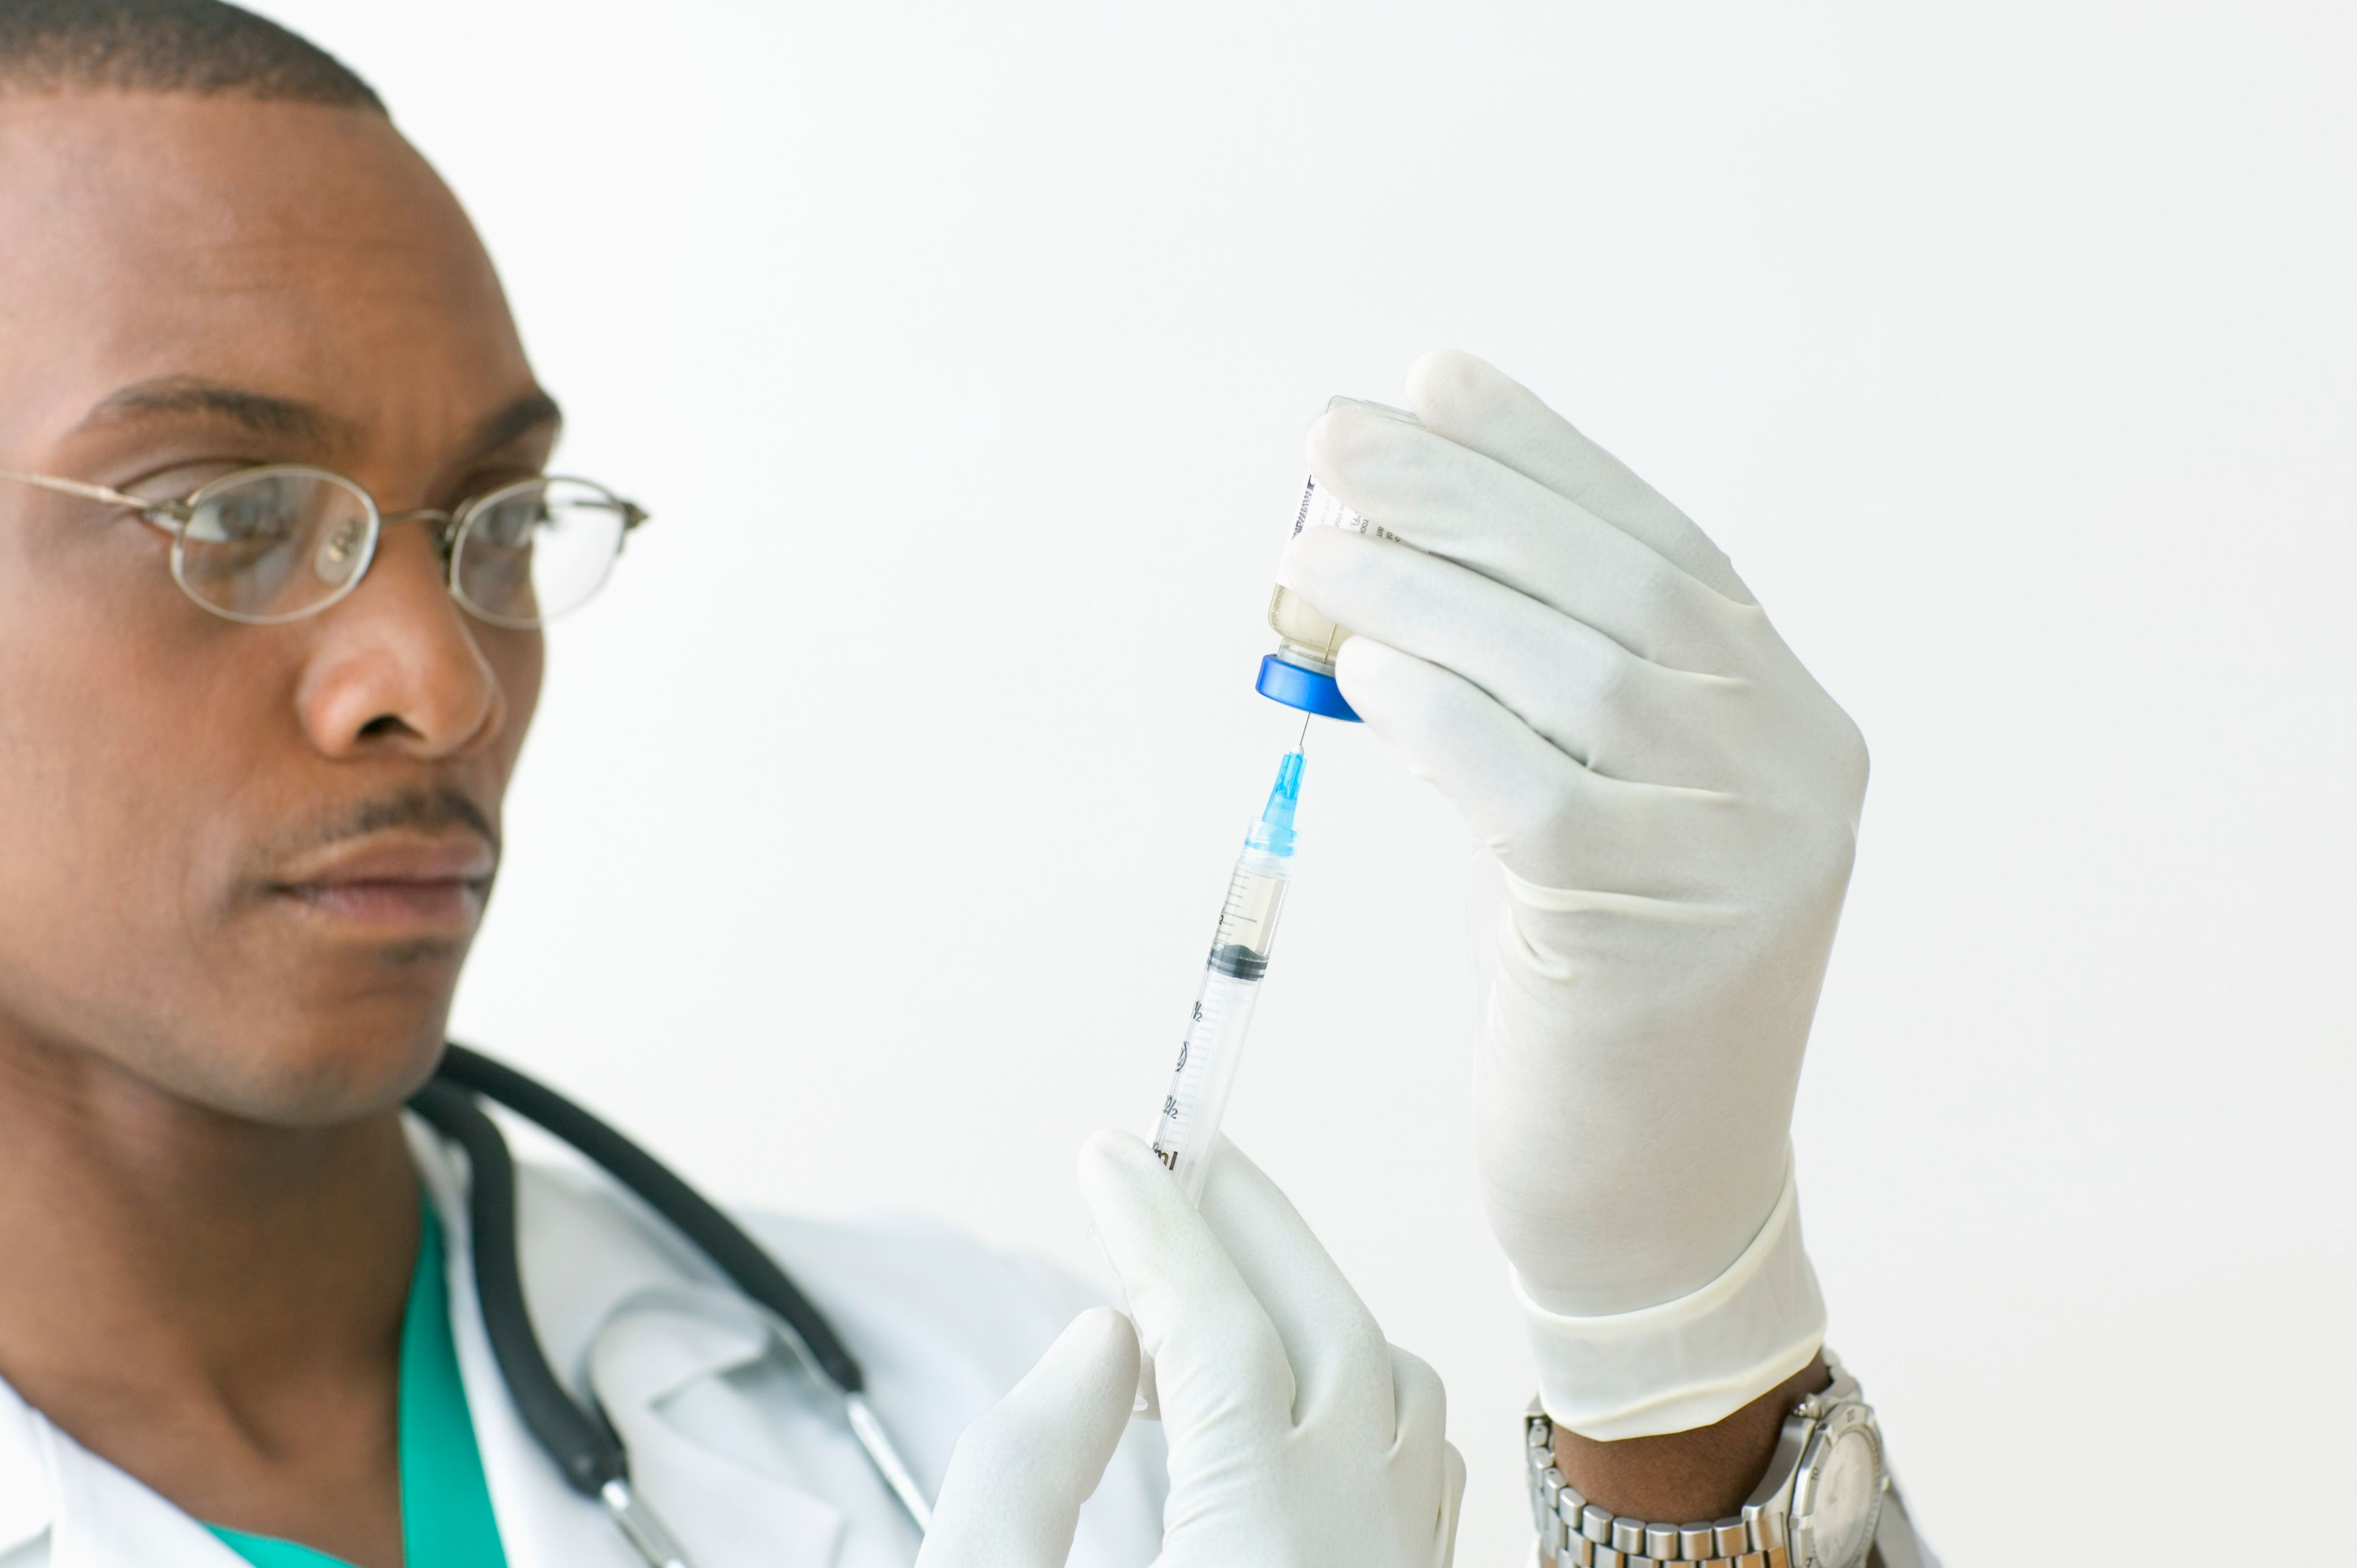 A doctor fills a needle with a vaccination